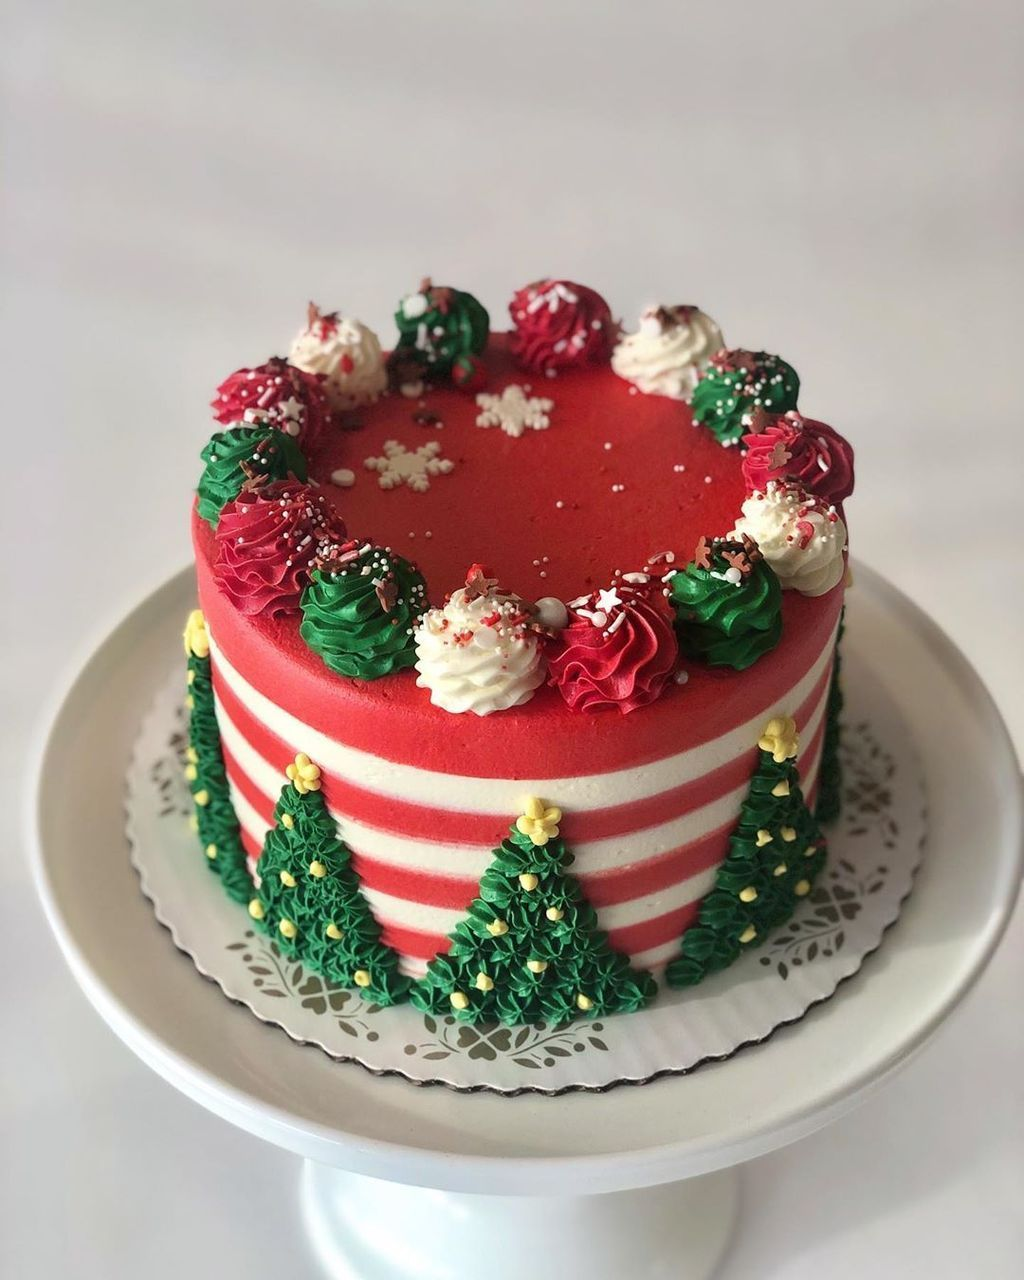 40 Wonderful Christmas Cake Decorating Ideas To Try Asap In 2020 Christmas Cake Designs Christmas Cake Decorations Christmas Cake